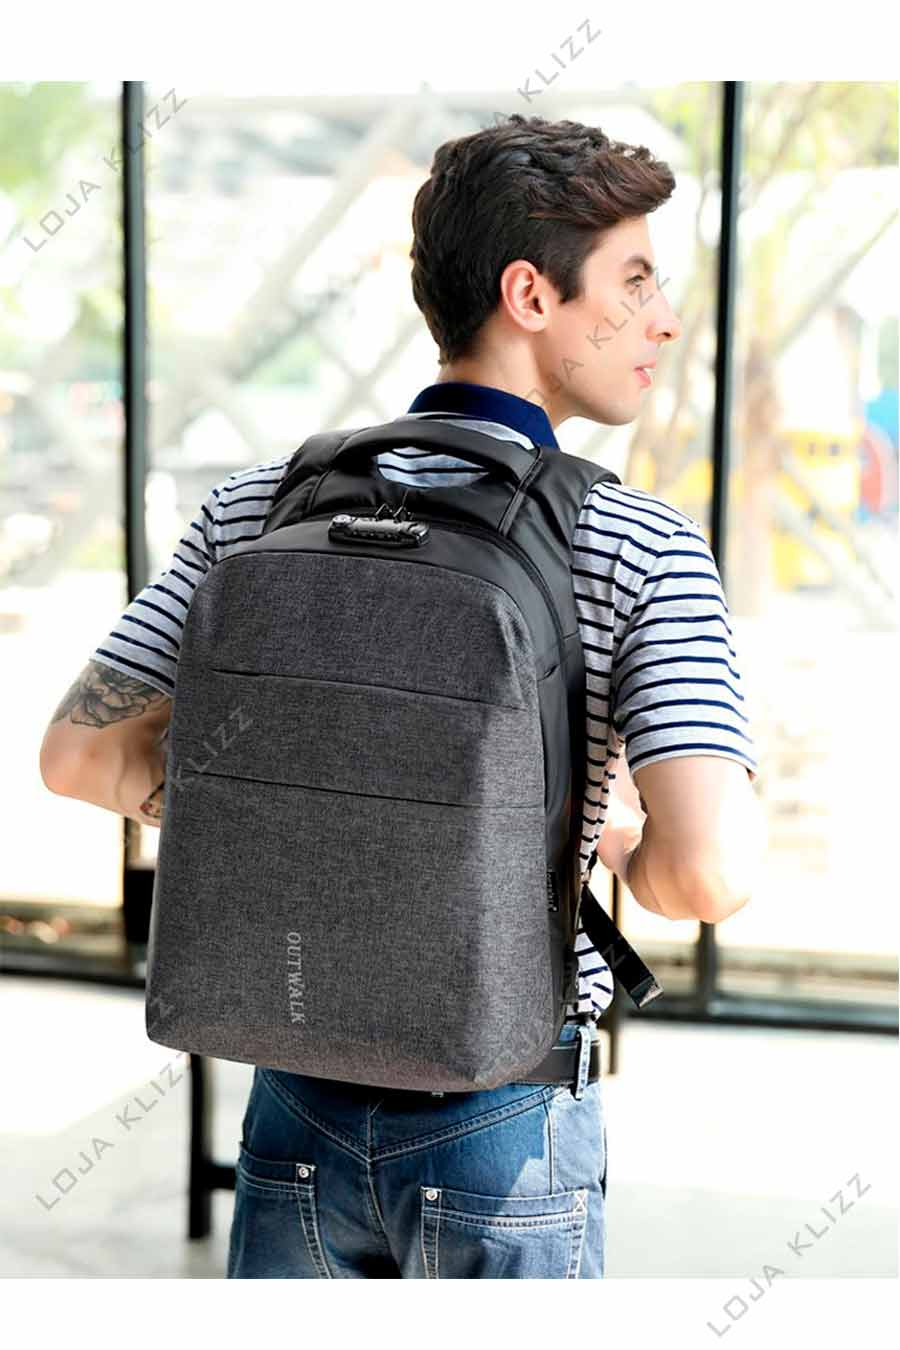 Mochila OTL Antifurto USB Notebook com Trava Zíper TSA  - KLIZZ